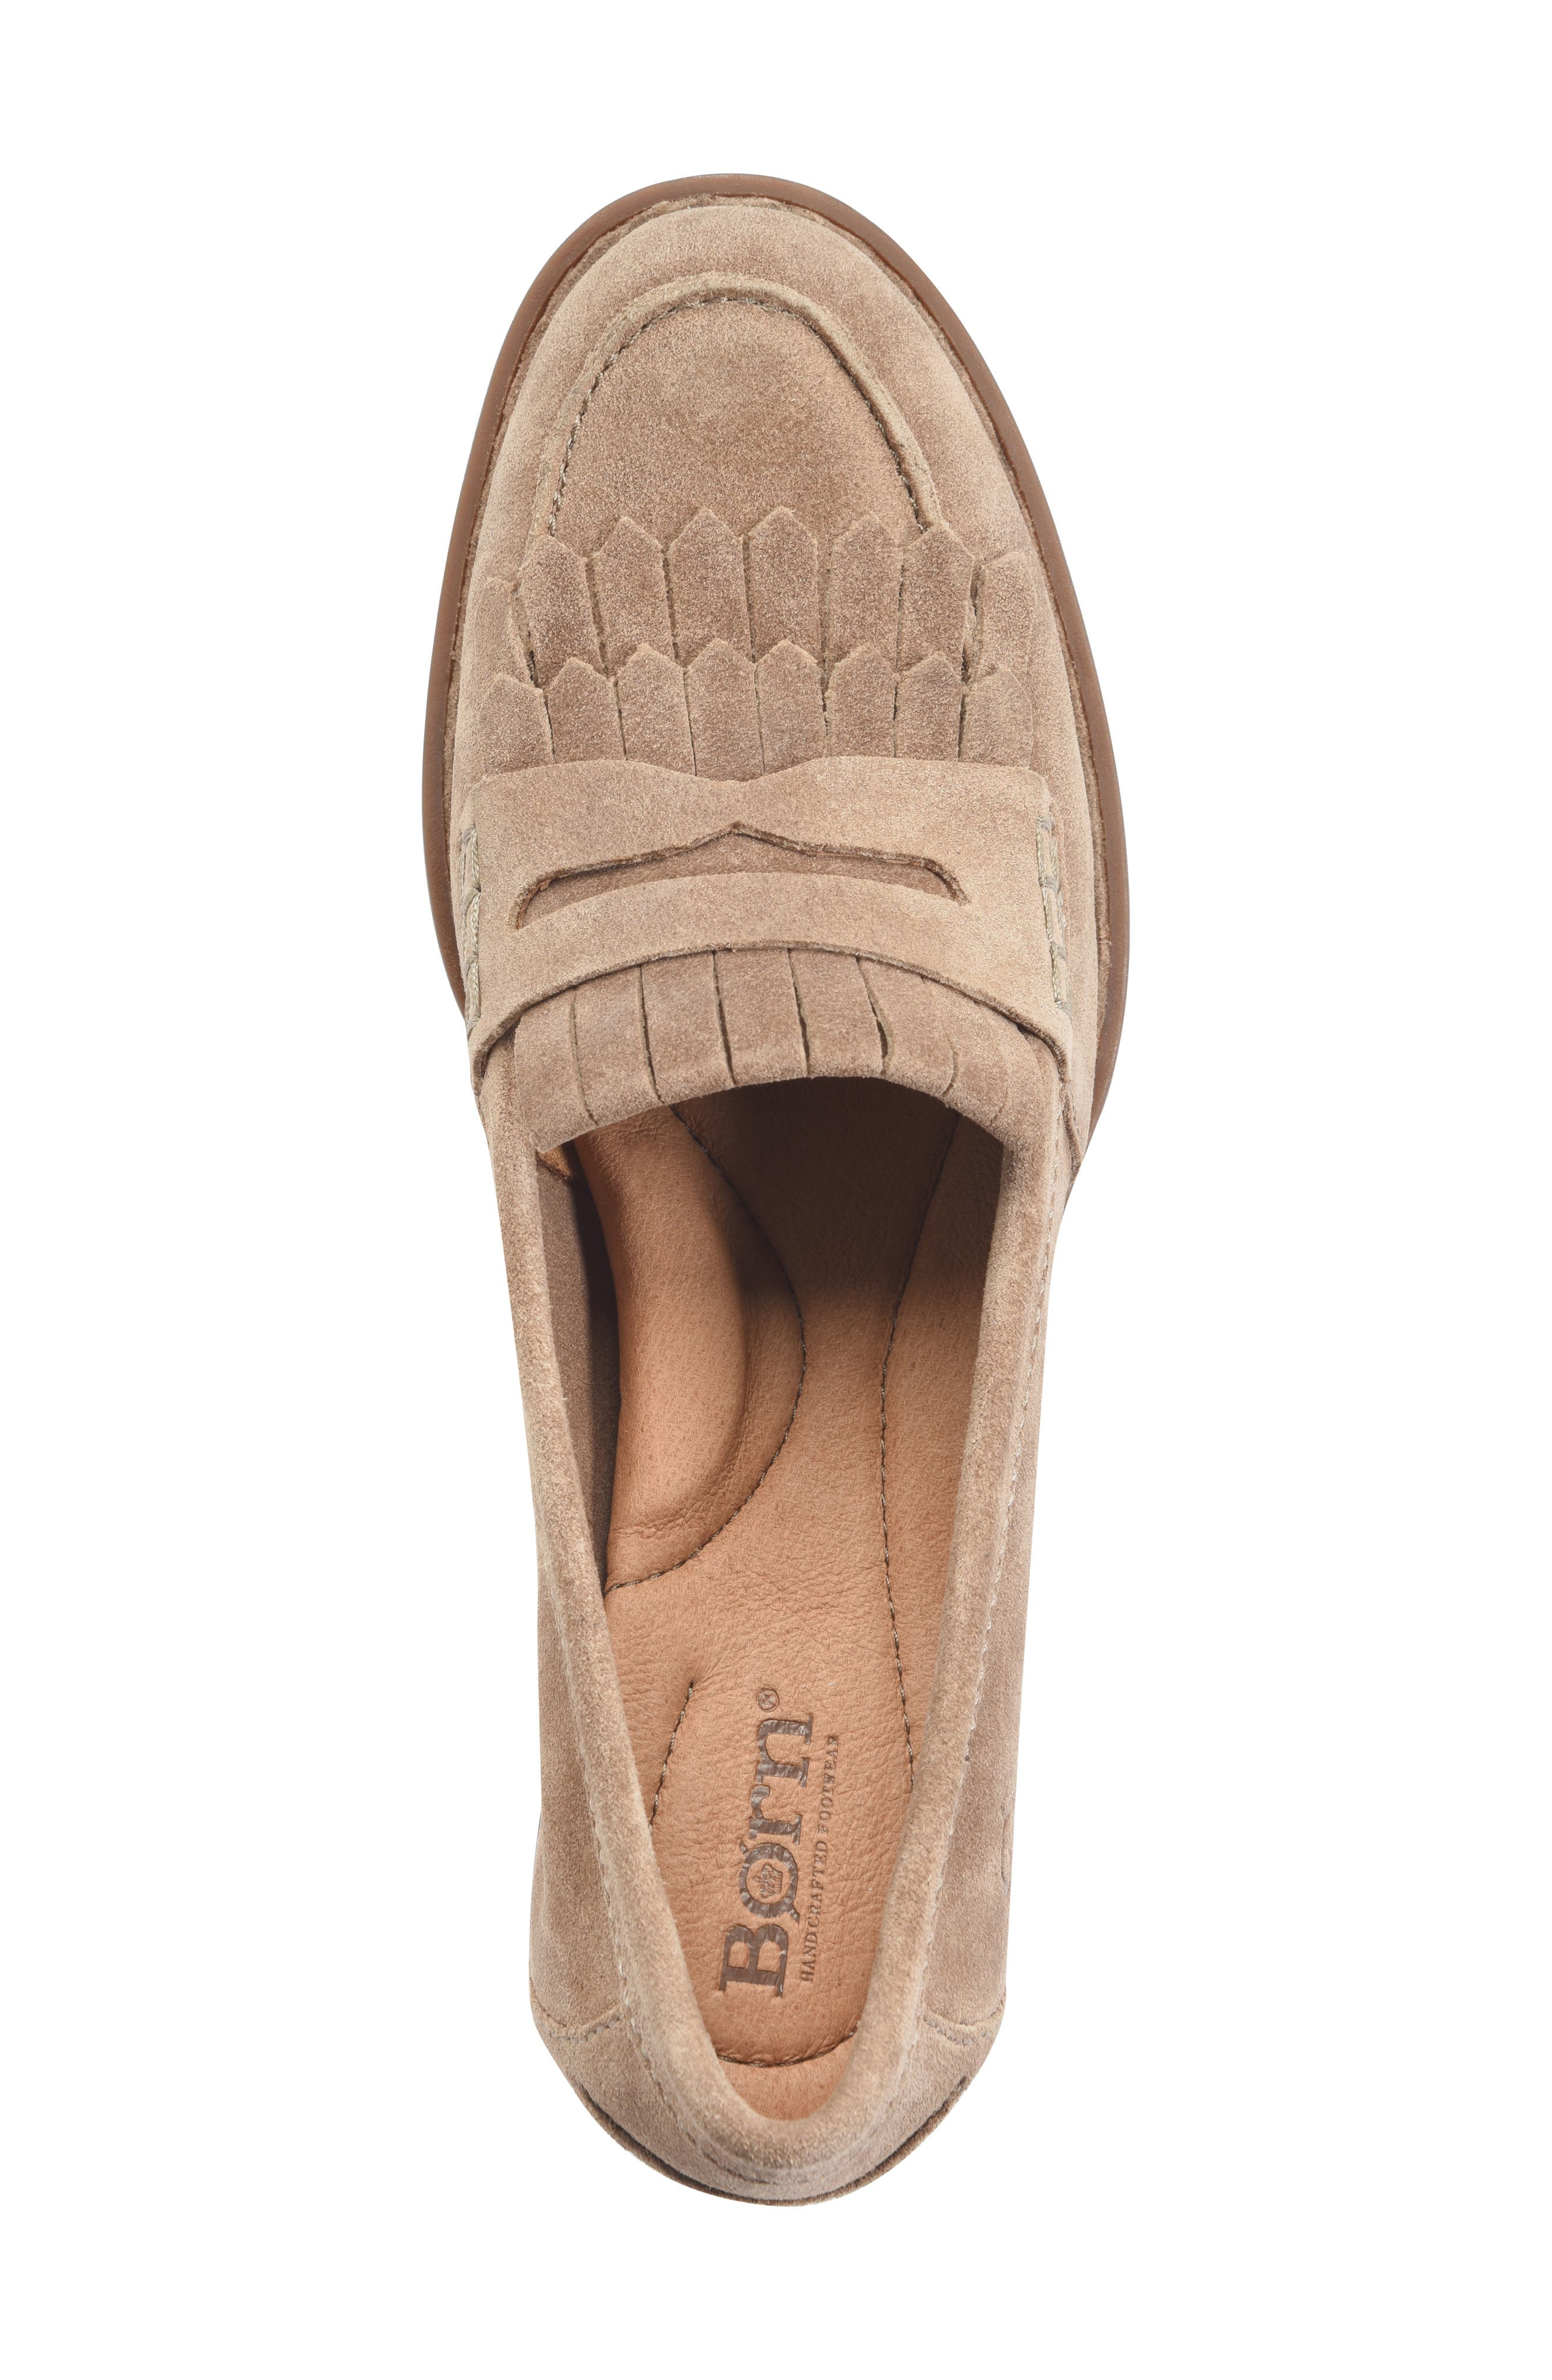 Lorens Loafer,                             Alternate thumbnail 5, color,                             TAUPE SUEDE